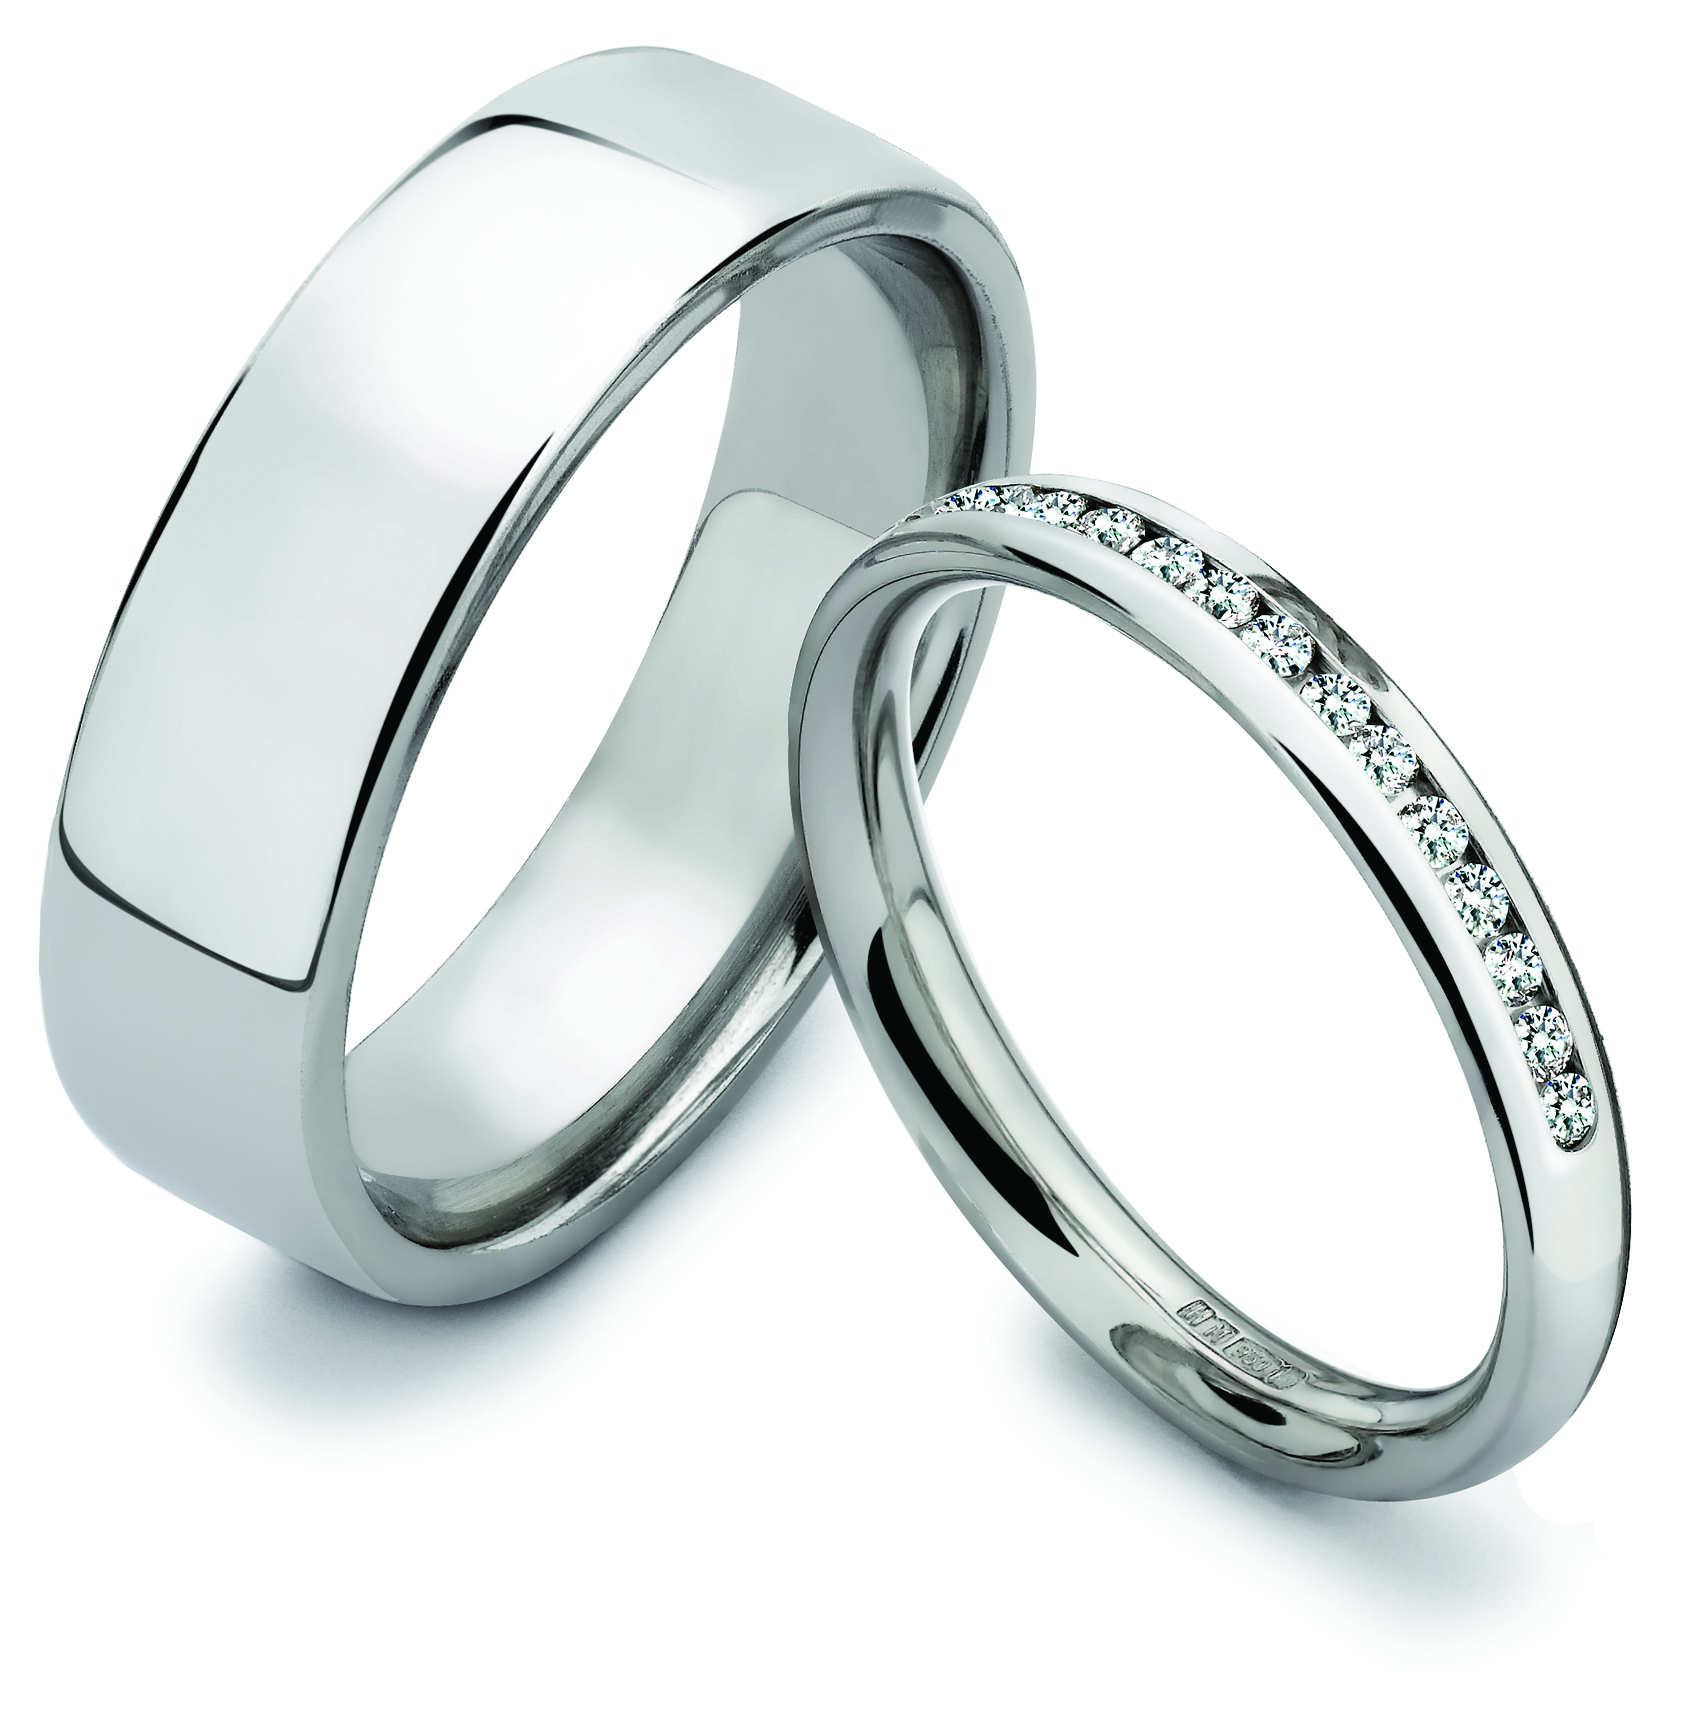 Black Diamond Wedding Rings His And Hers 002 - Black Diamond Wedding Rings His And Hers